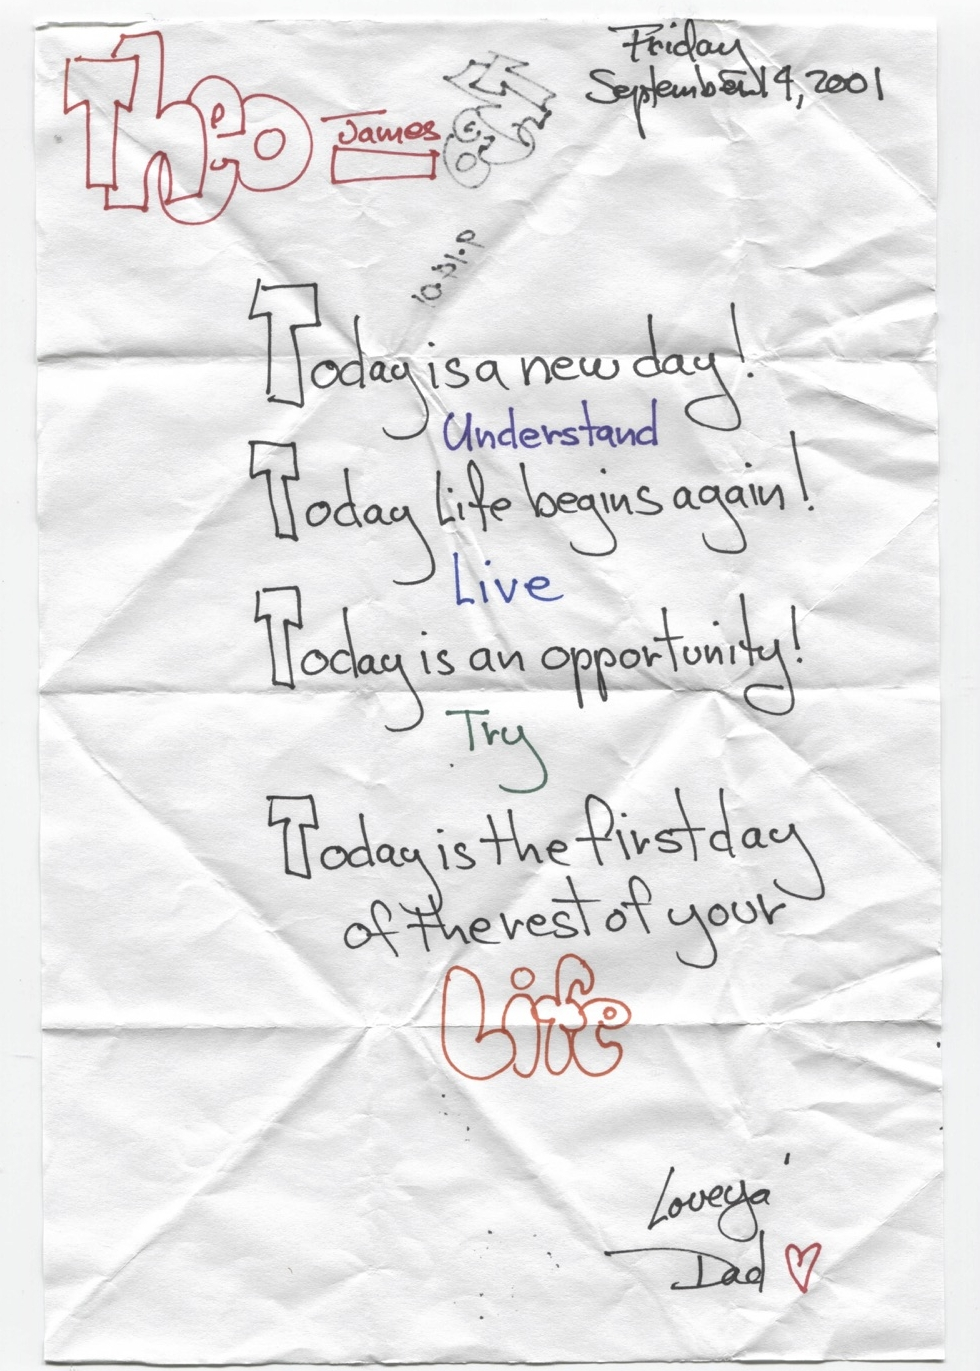 Today is a new day! Understand. Today life begins again! Live. Today is an opportunity! Try. Today is the first day of the rest of your Life.